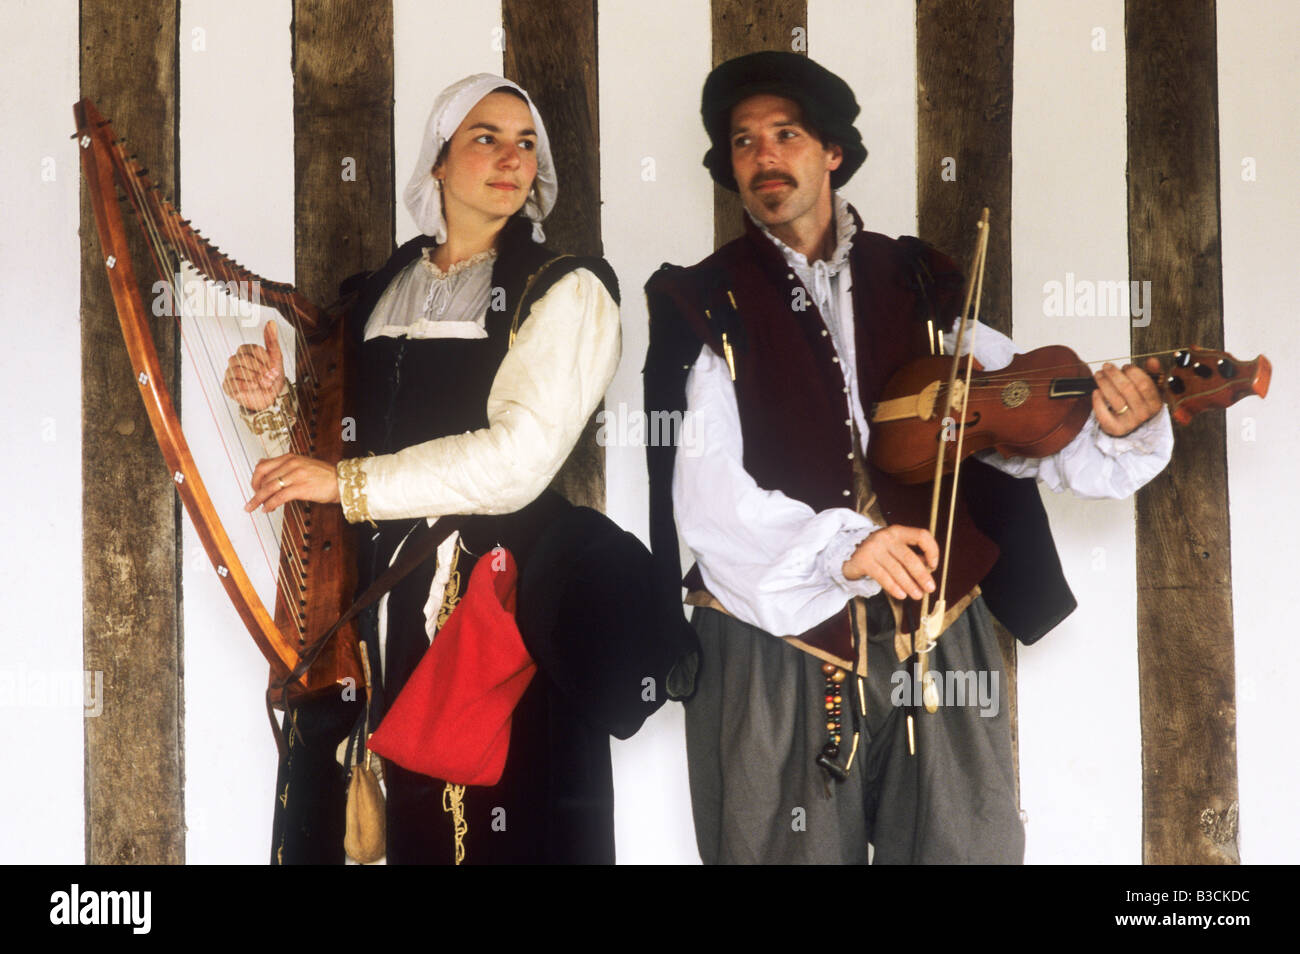 Historical re-enactment Elizabethan musicians musician music musical instrument instruments man woman playing harp - Stock Image